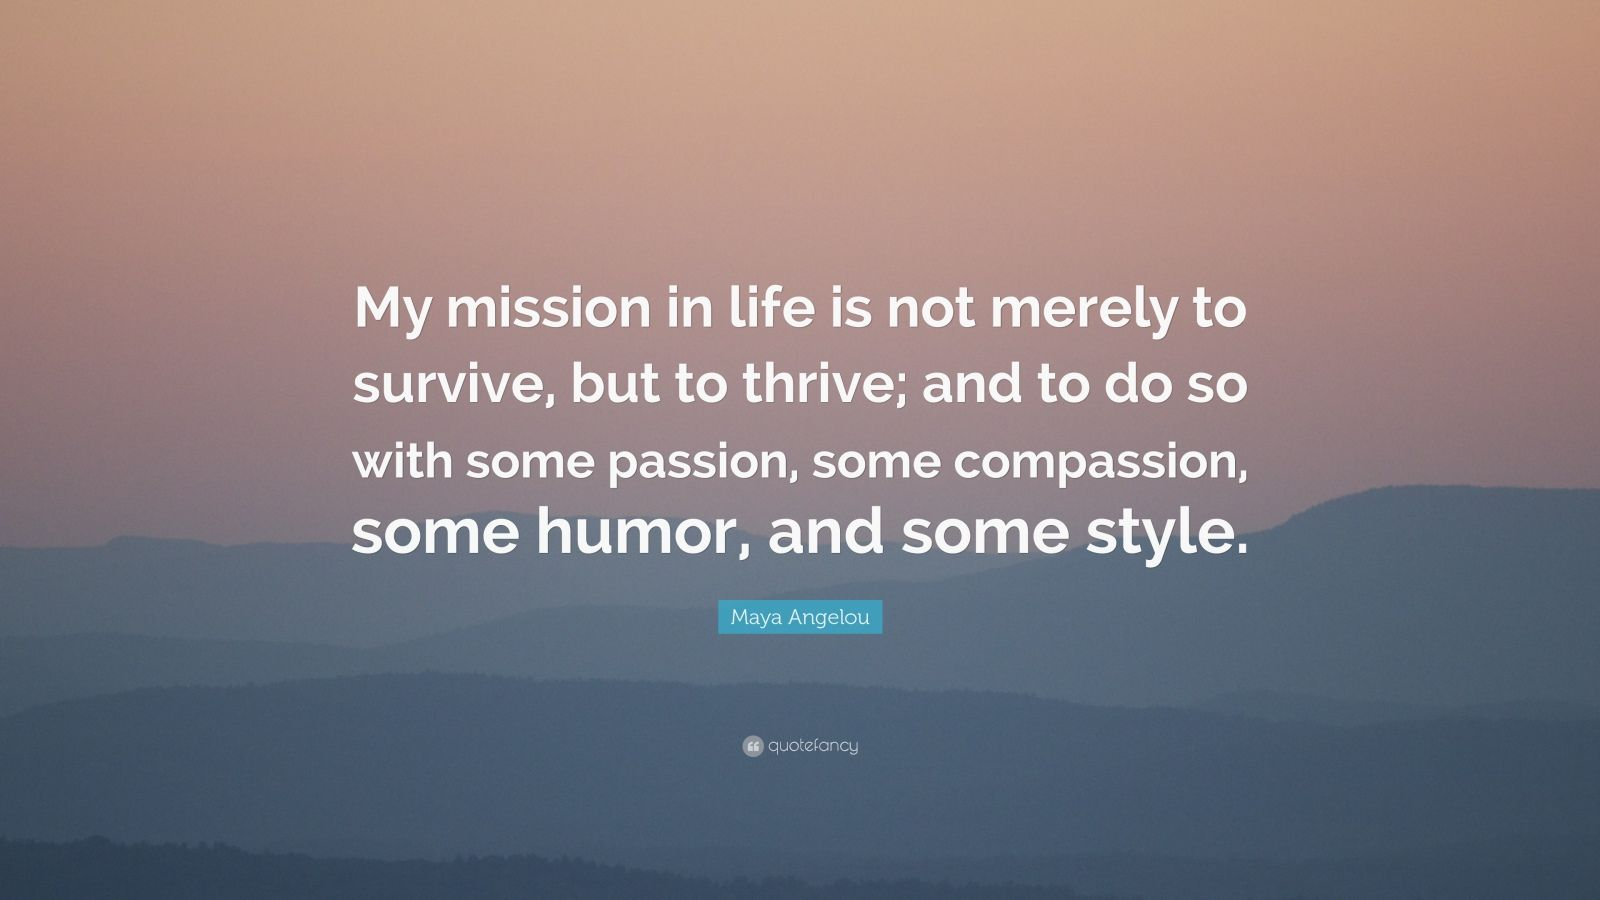 Rumi Quotes Wallpaper Maya Angelou Quote My Mission In Life Is Not Merely To